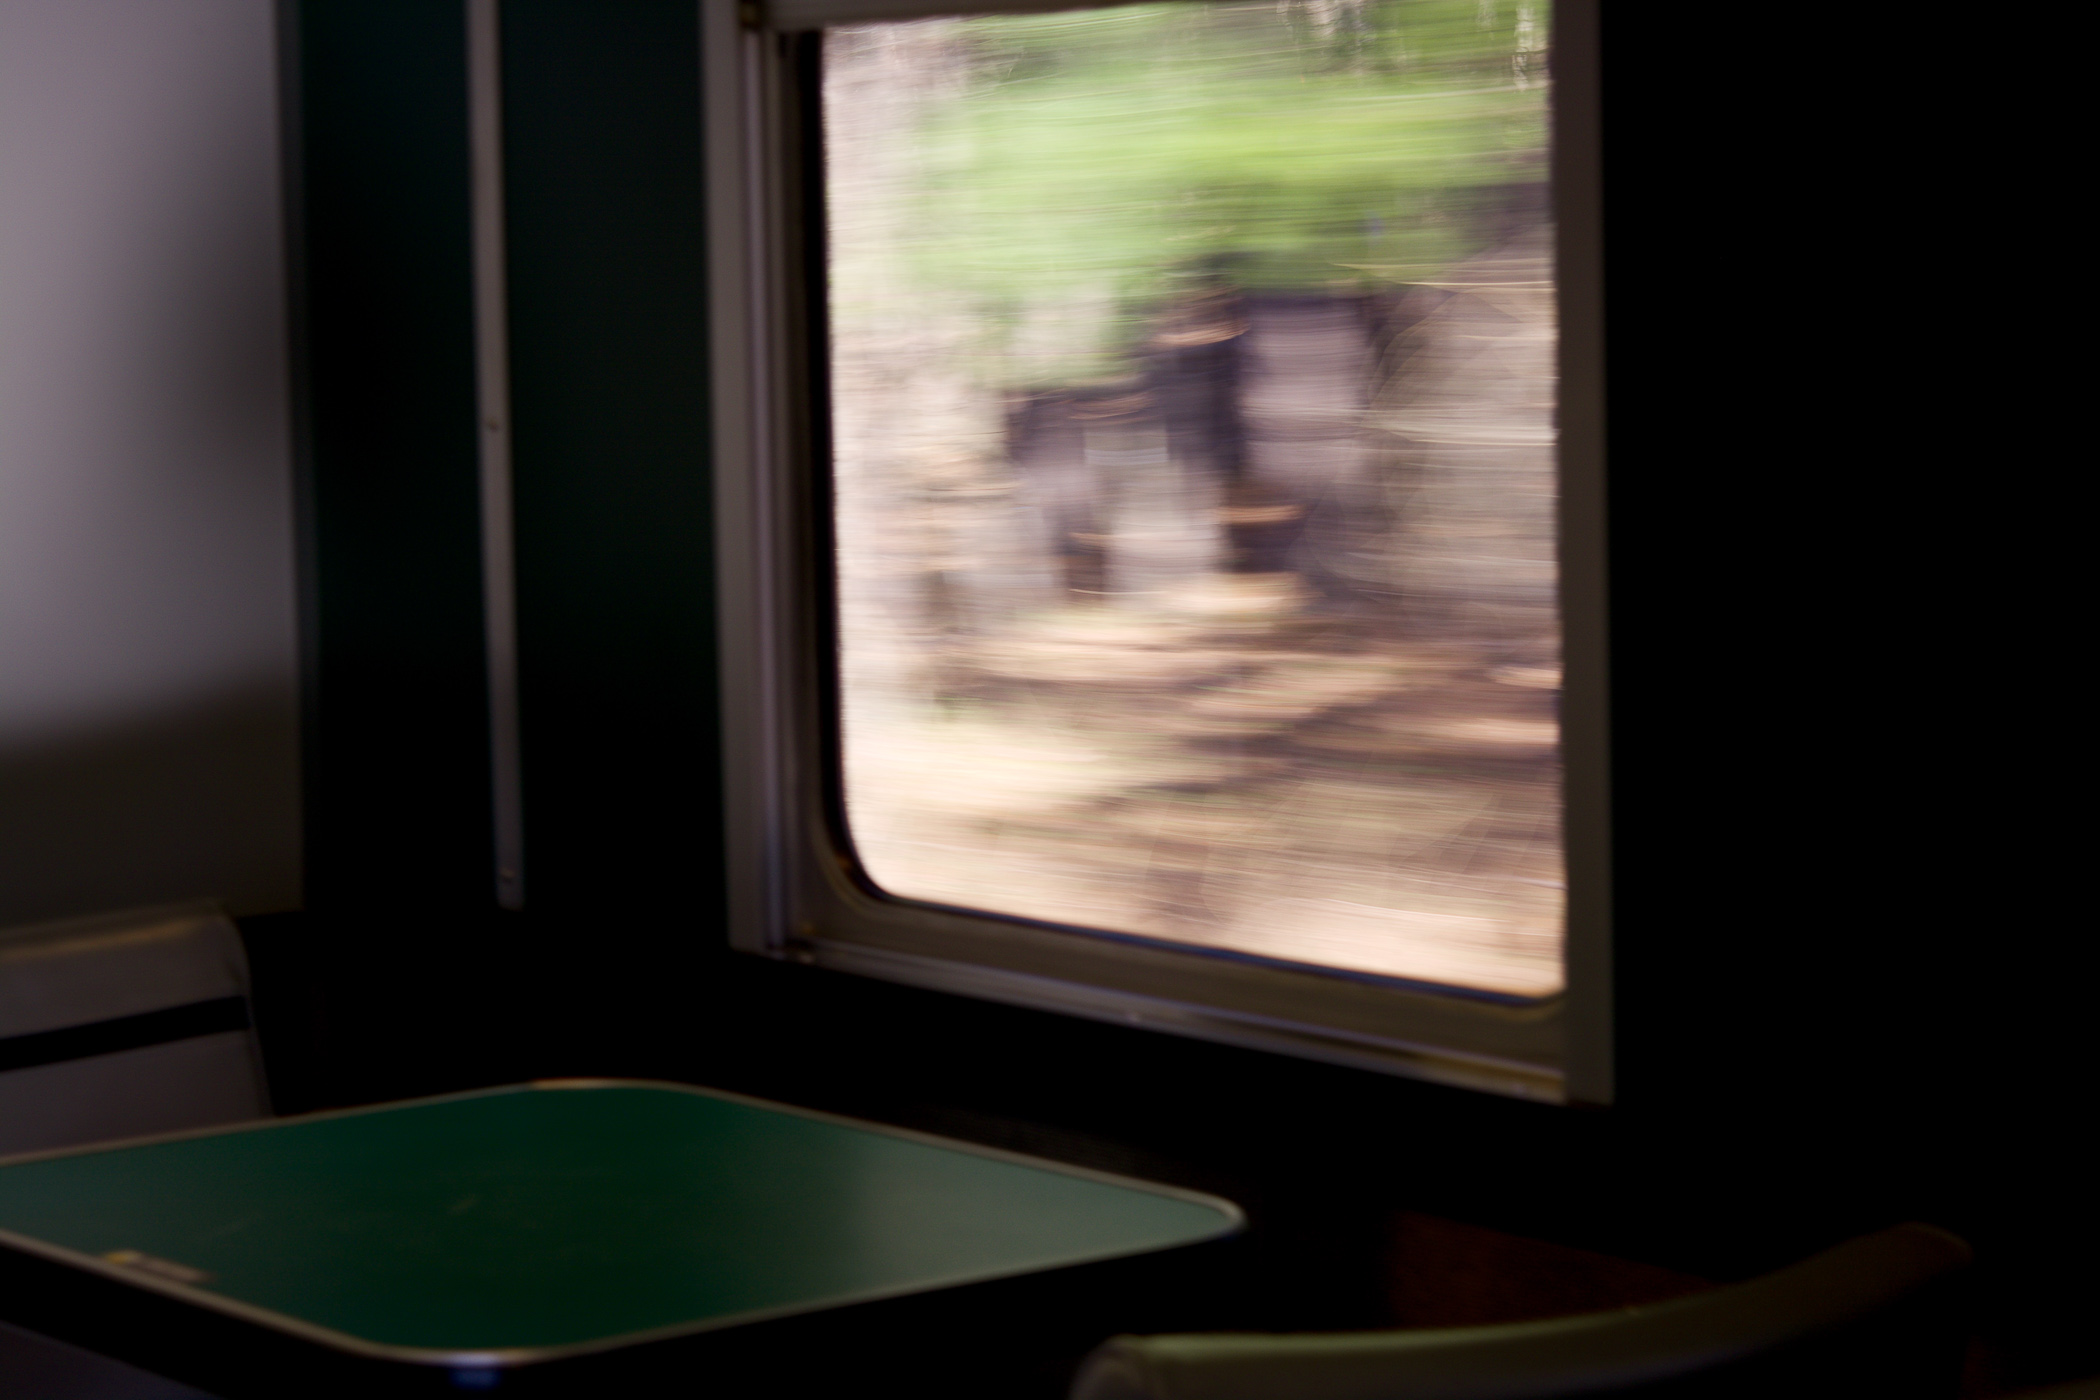 Cafe window from moving train.